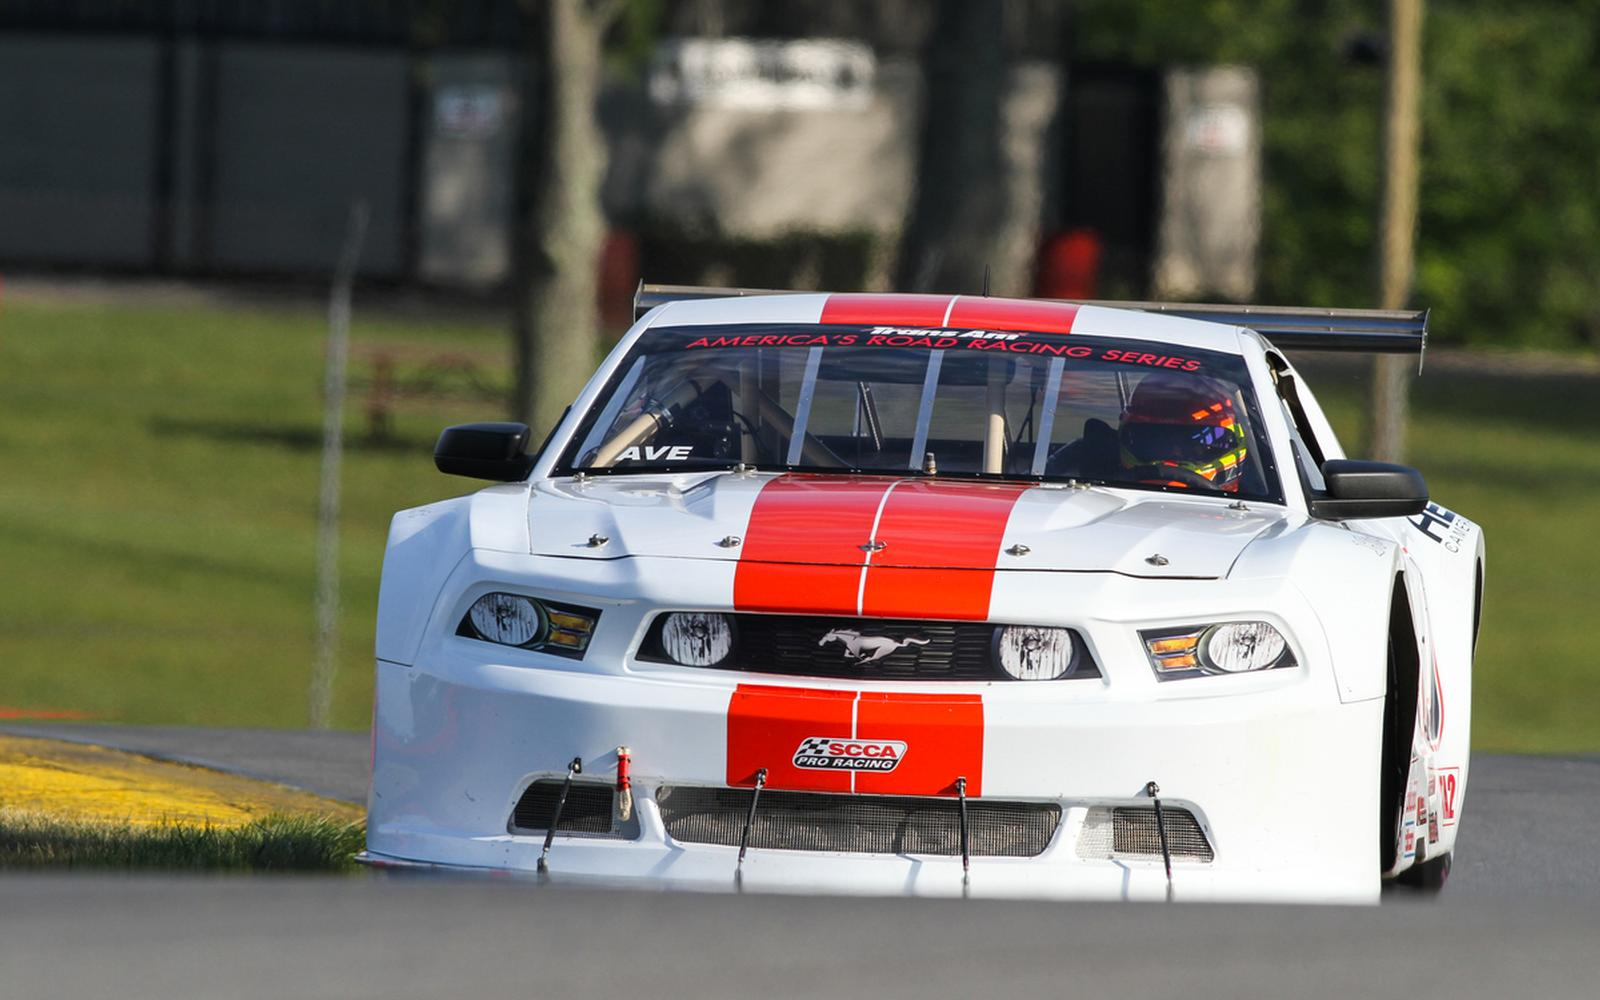 Tony Ave Returns to Home Turf at Road America with Tony Ave Racing and Ave Motorsports